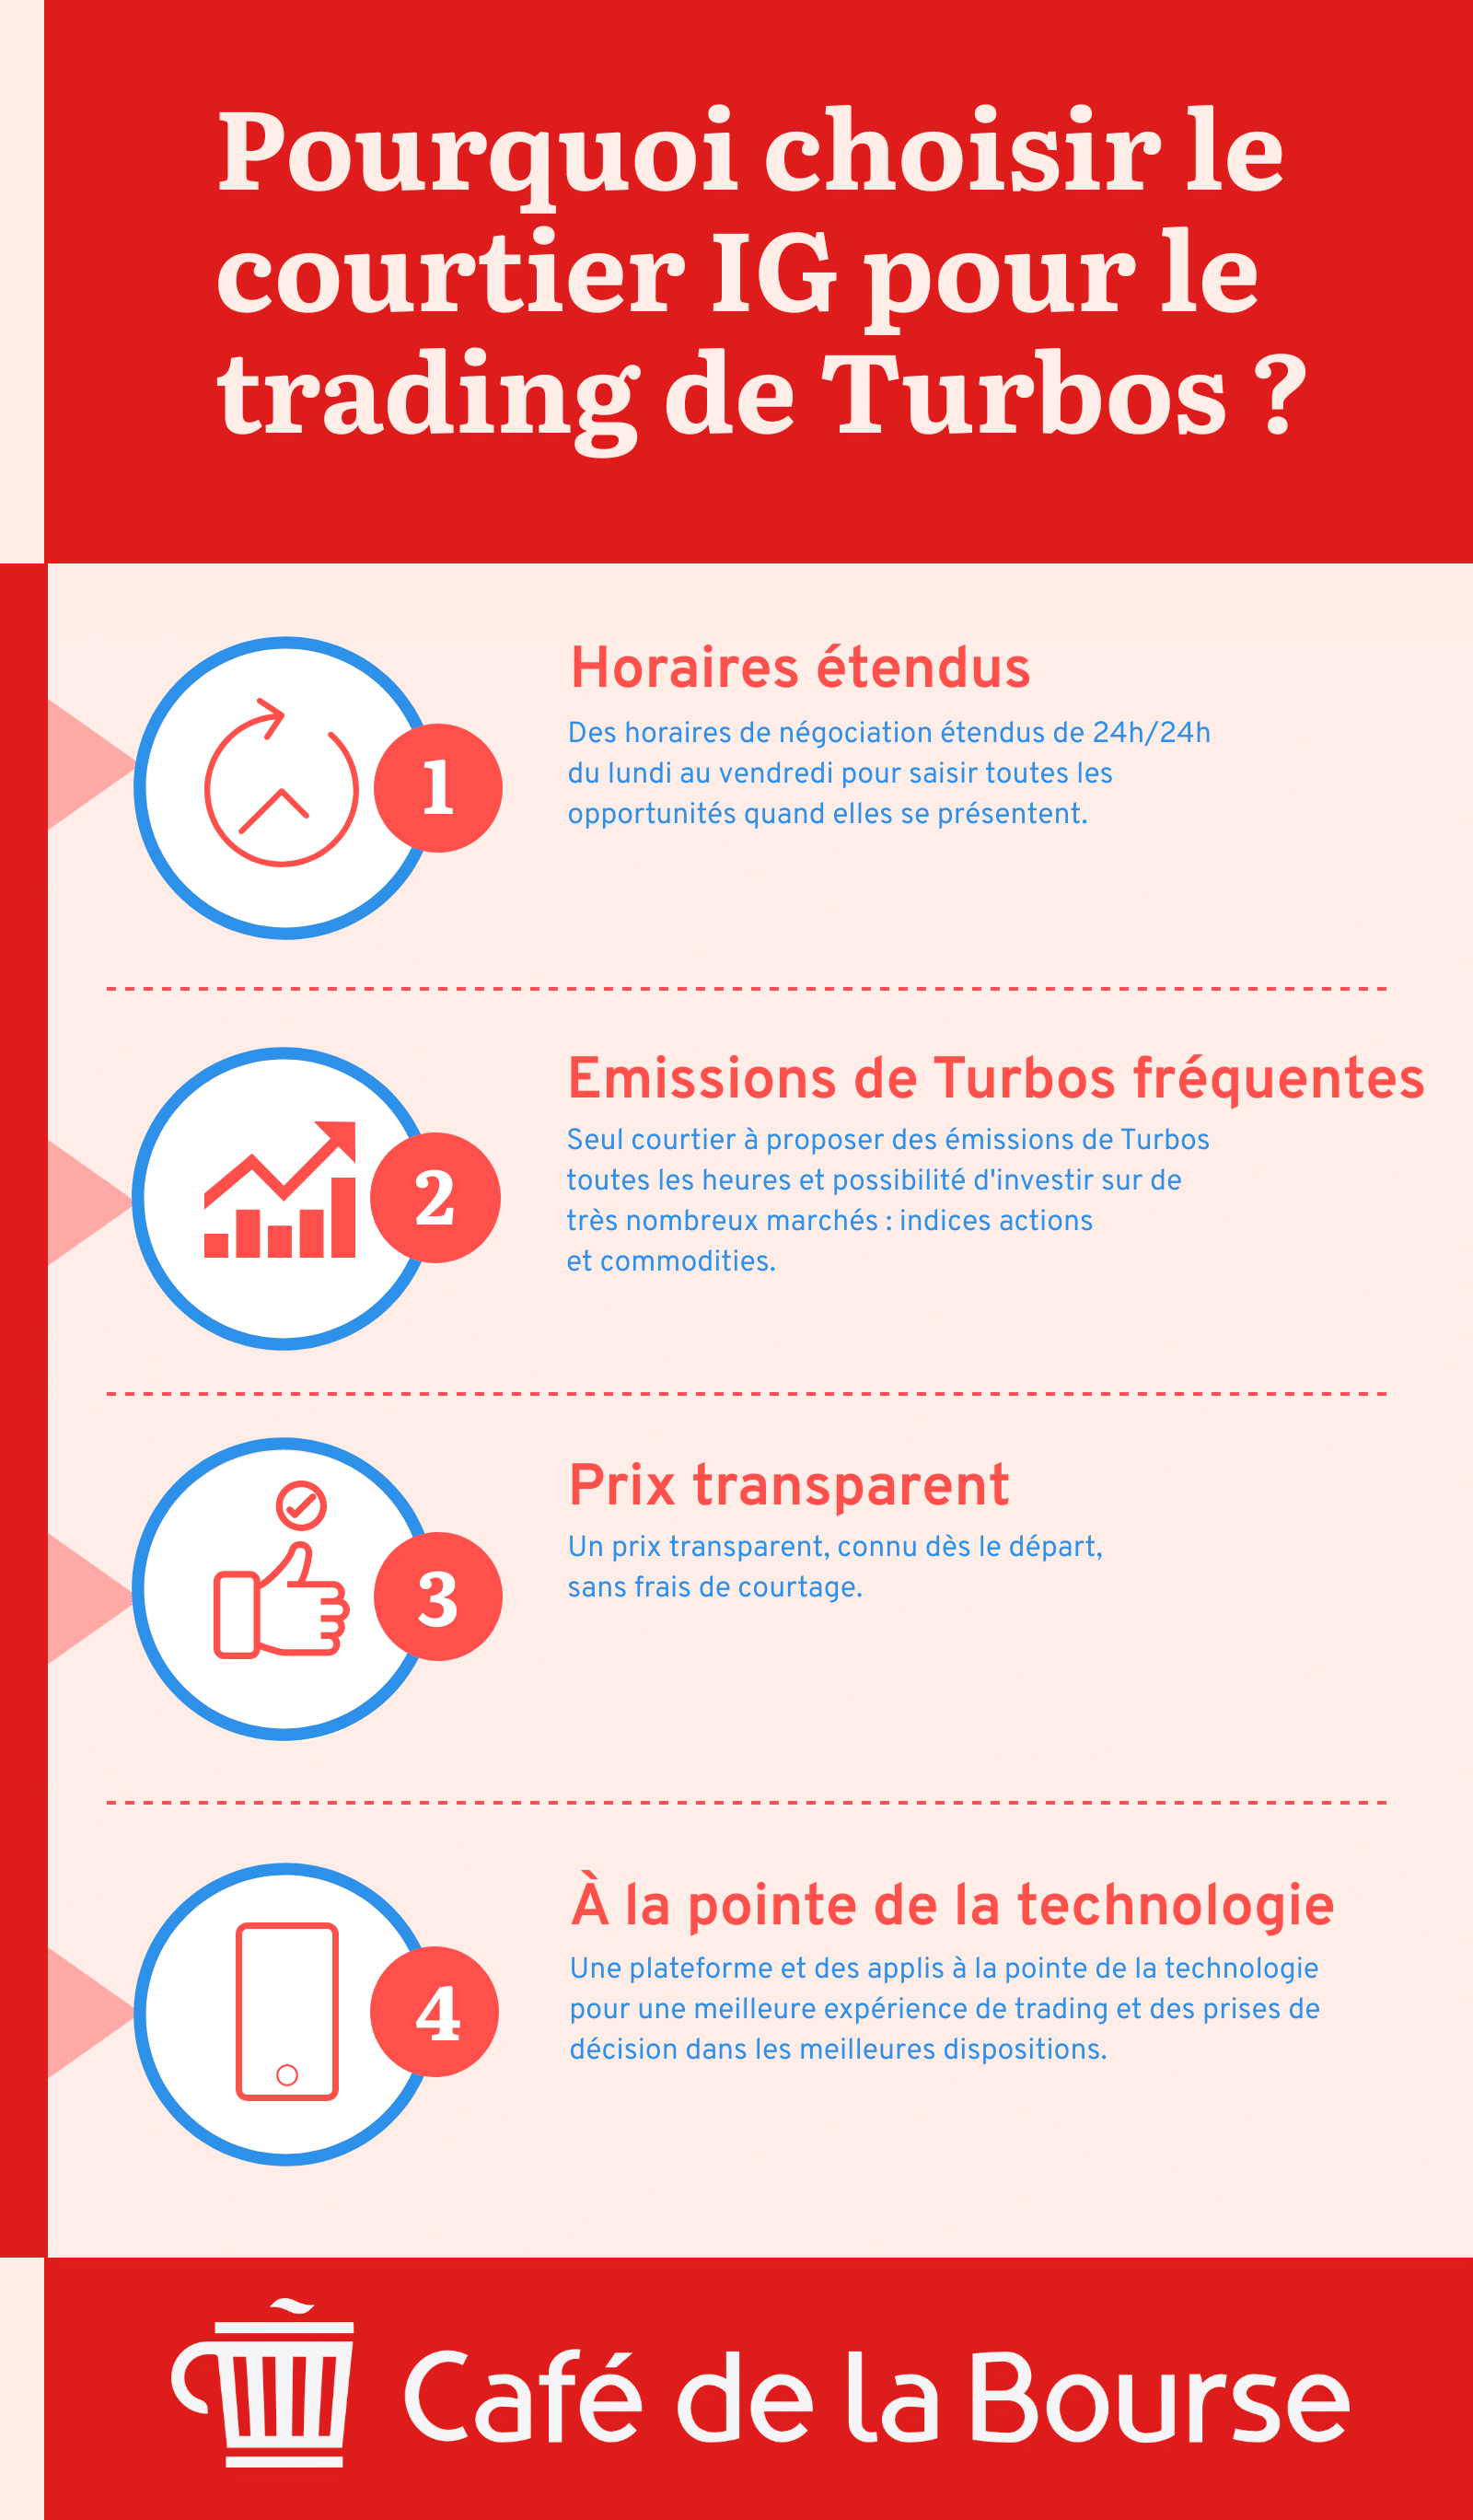 Infographie pourquoi choisir courtier IG trading Turbo